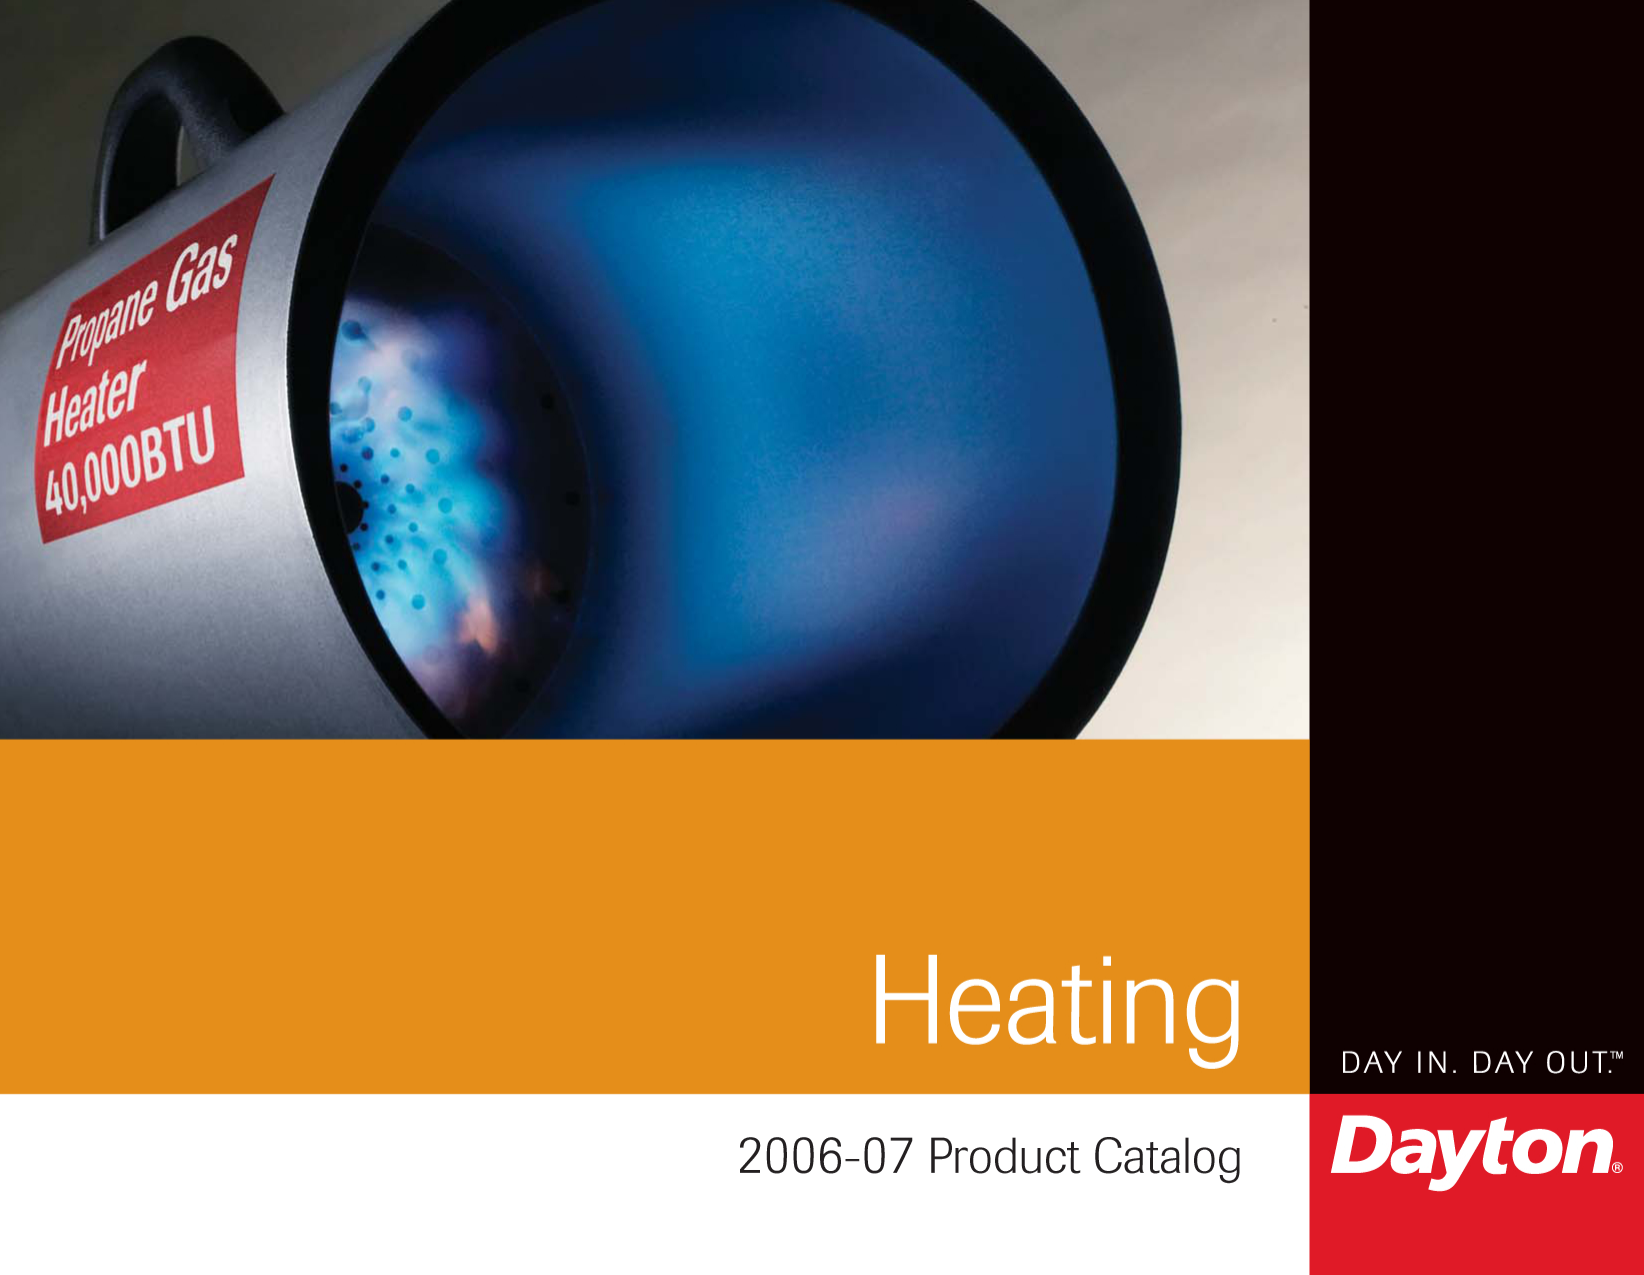 Dayton Heating Products on